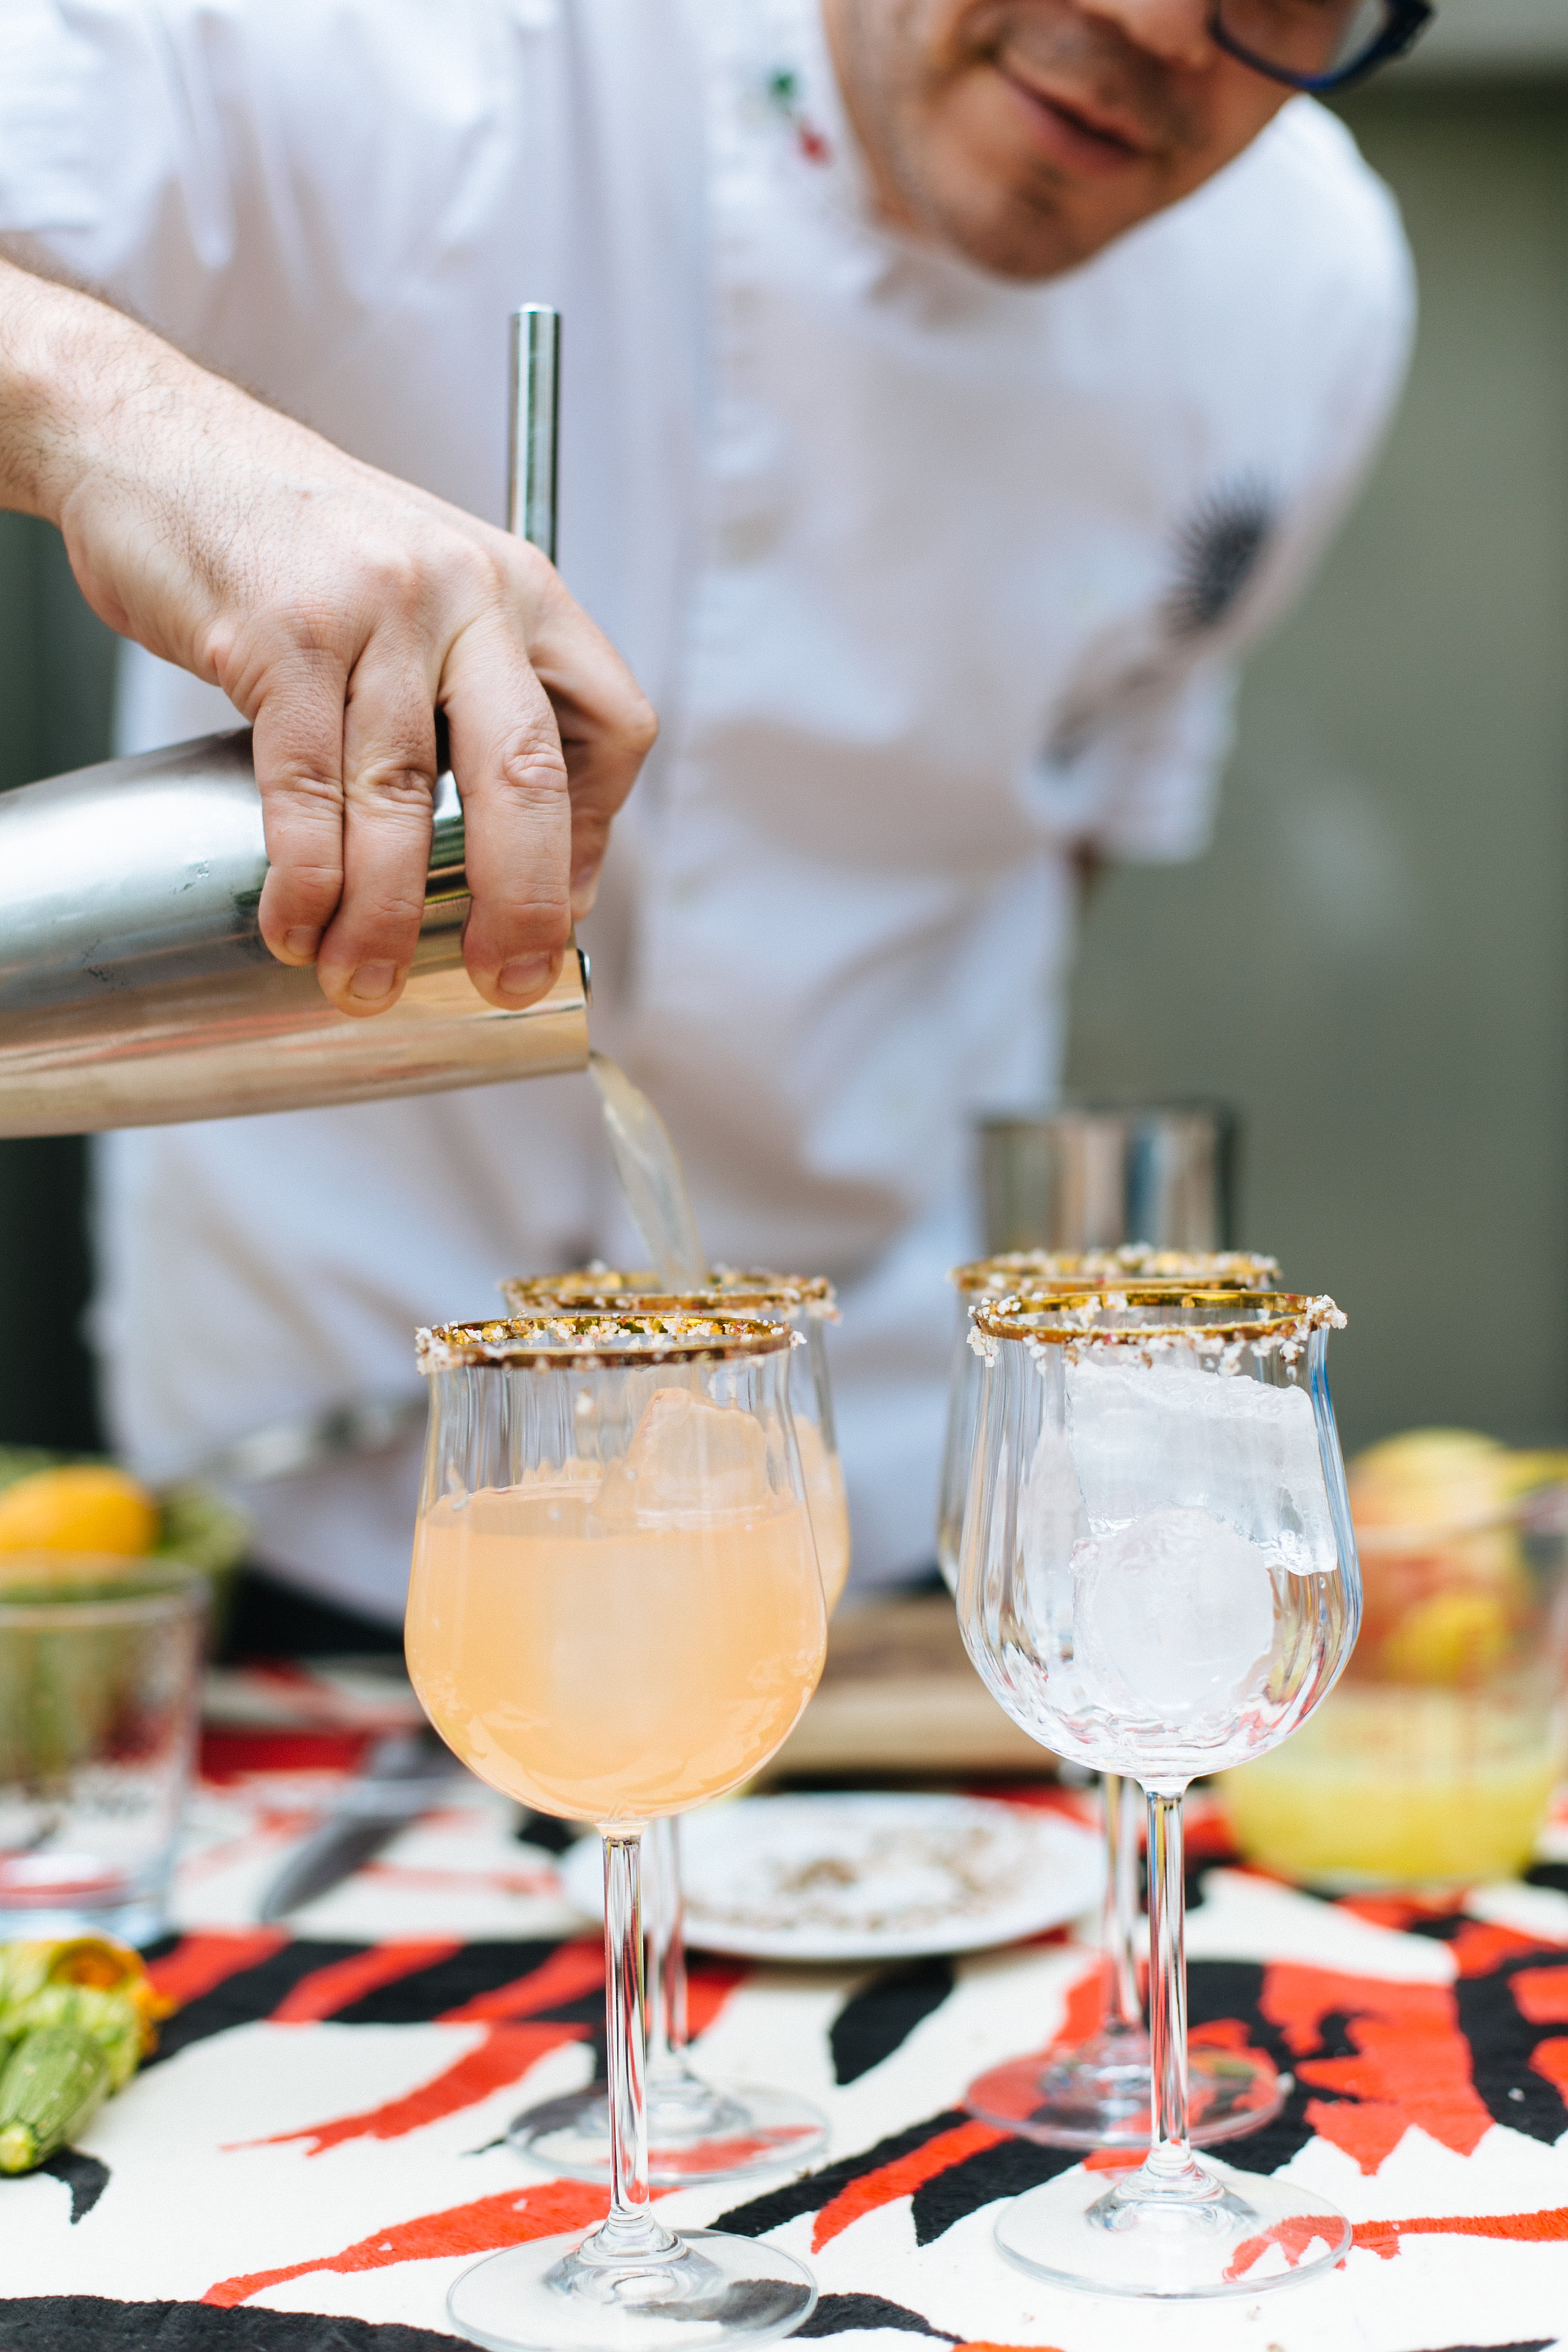 Copy of man serving cocktails with Altos tequila